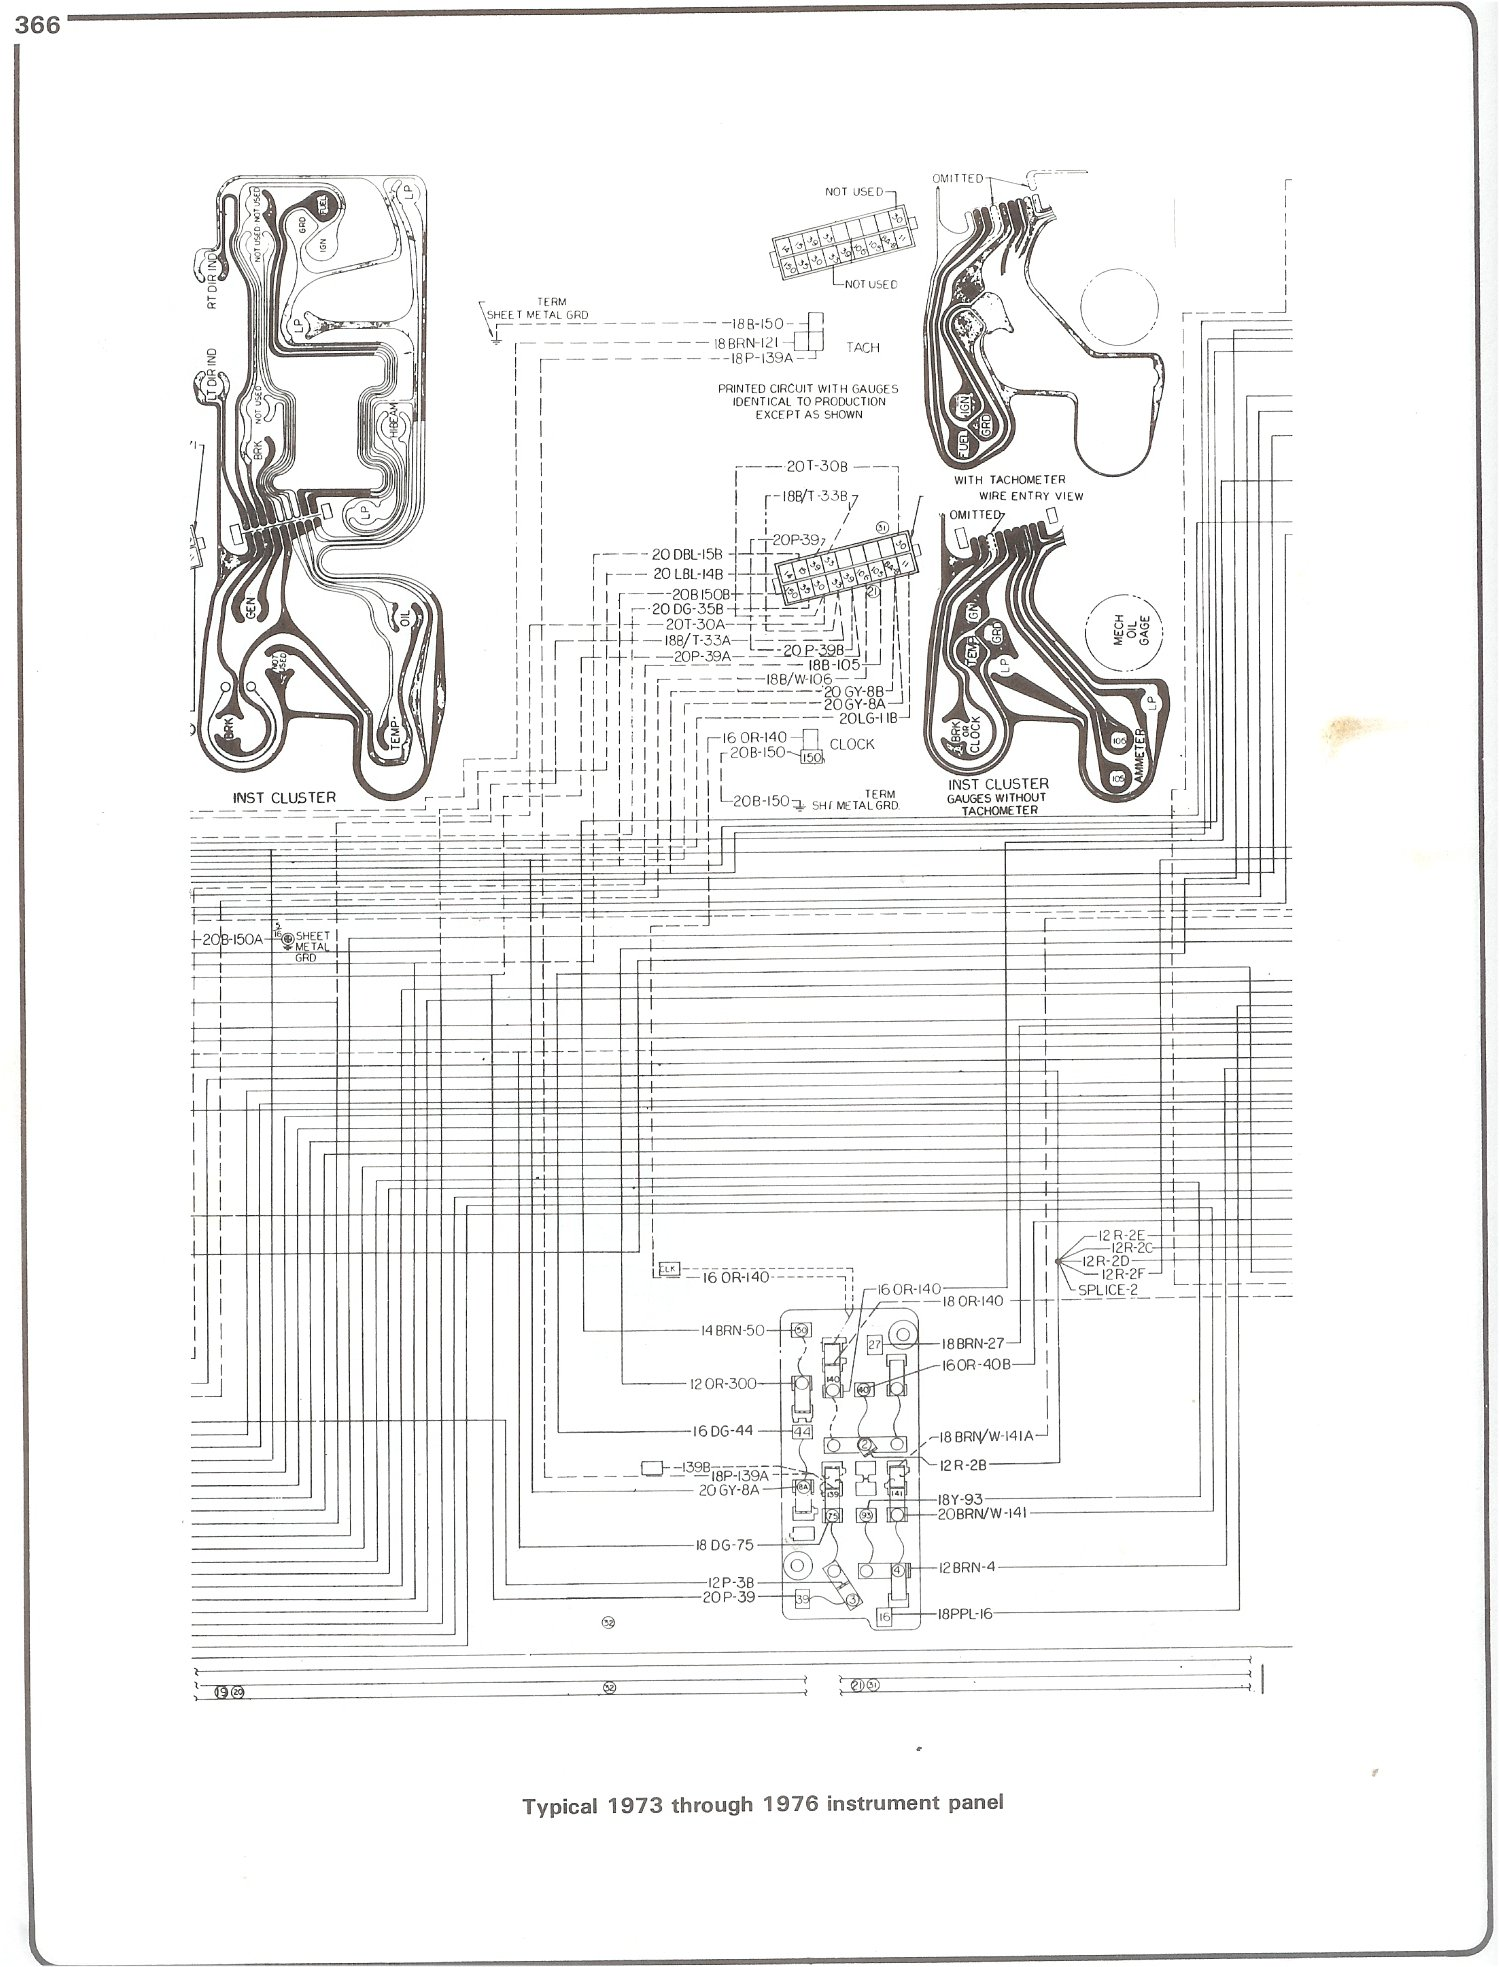 New Holland 4630 Wiring Diagram furthermore 1024794 1979 F250 Ignition Switch additionally QY8n 18128 in addition C3 C4 Corvette Vacuum Diagrams Grumpys Performance Garage Img 1957 likewise Schematics h. on 1979 ford fuse box diagram